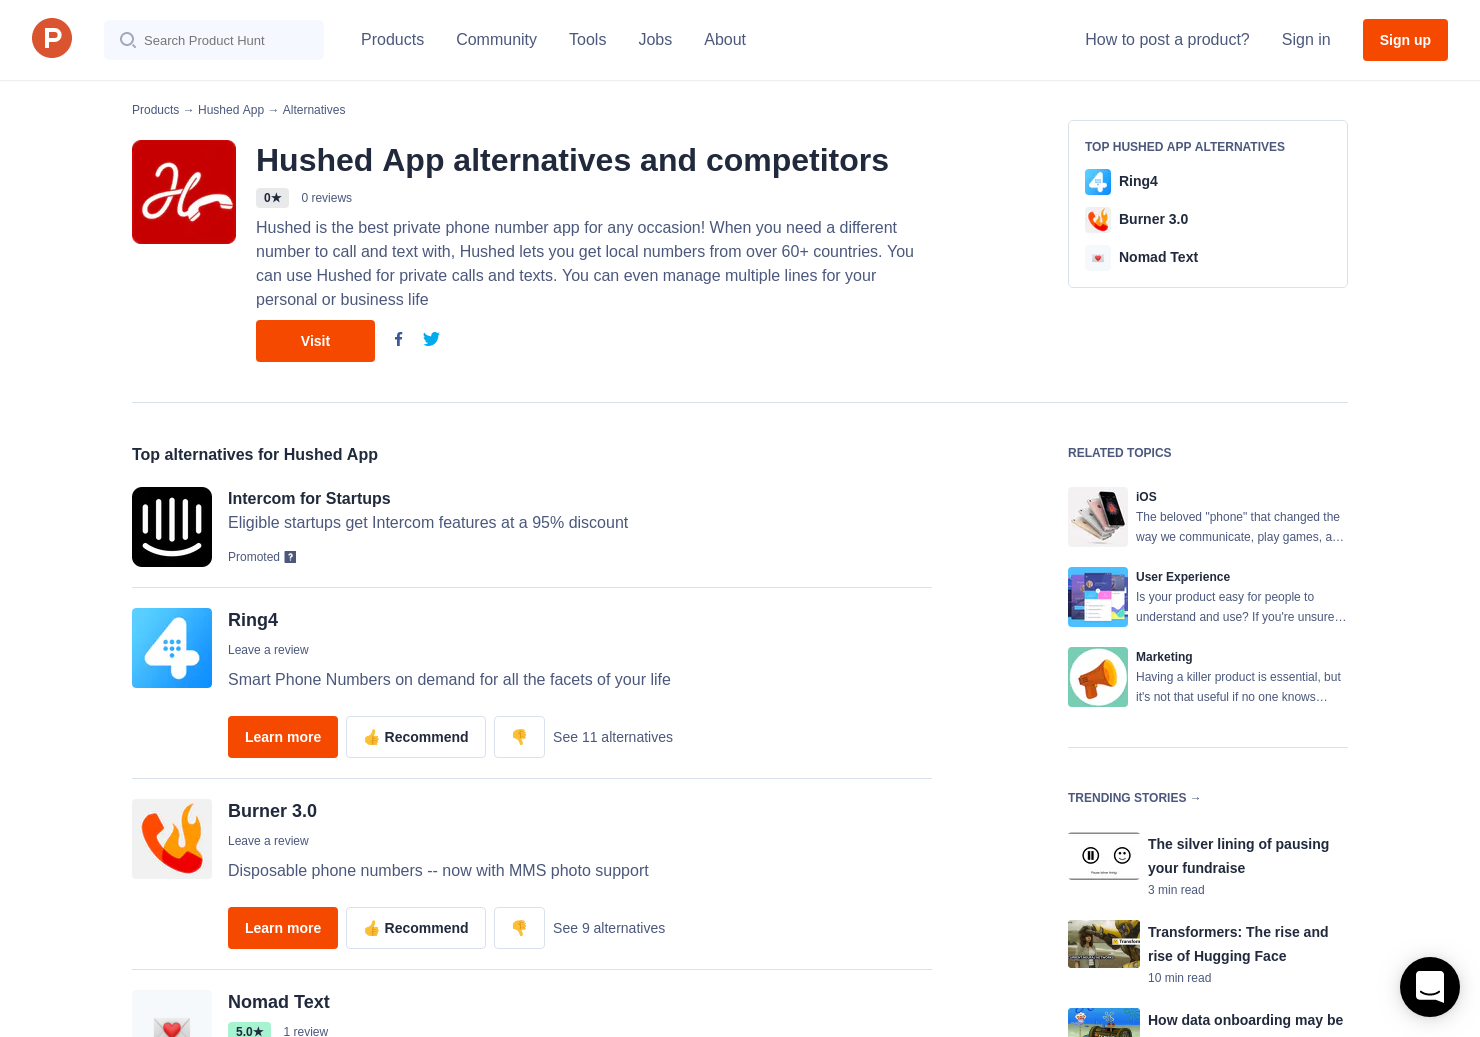 6 Alternatives to Hushed App for iPhone | Product Hunt